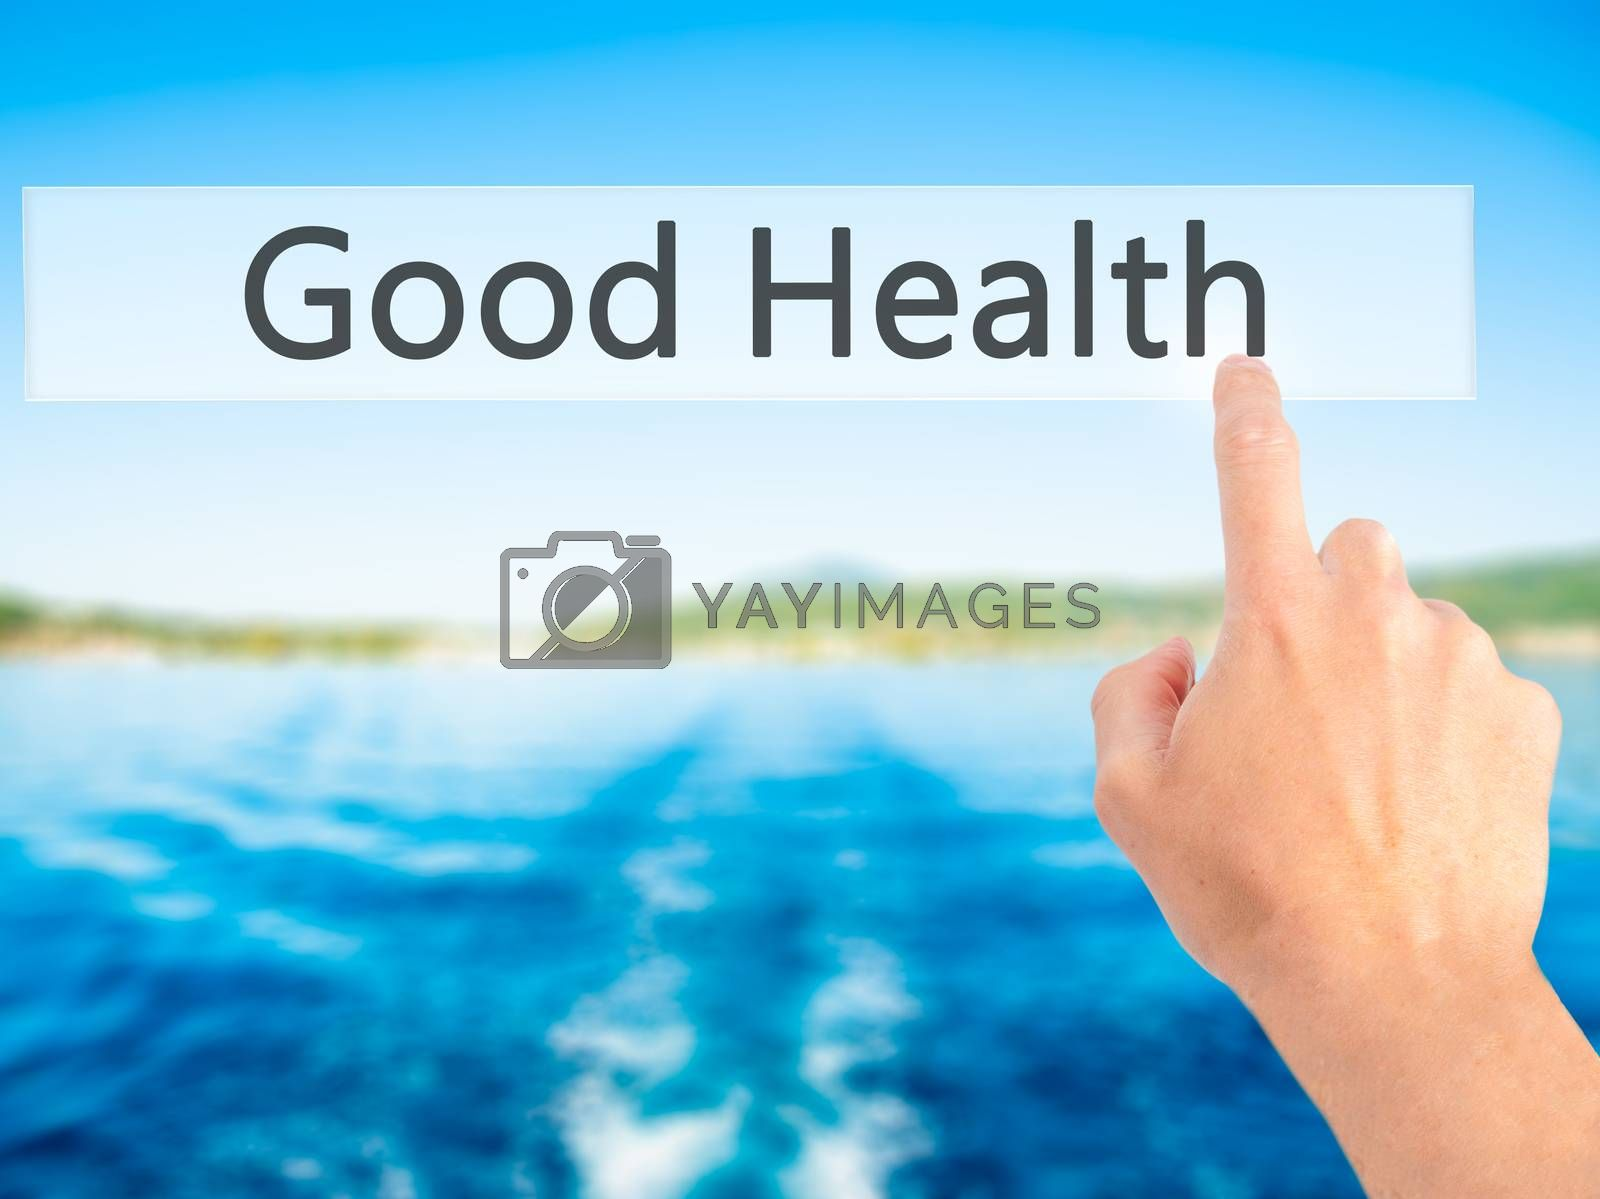 Good Health - Hand pressing a button on blurred background conce by netsay.net